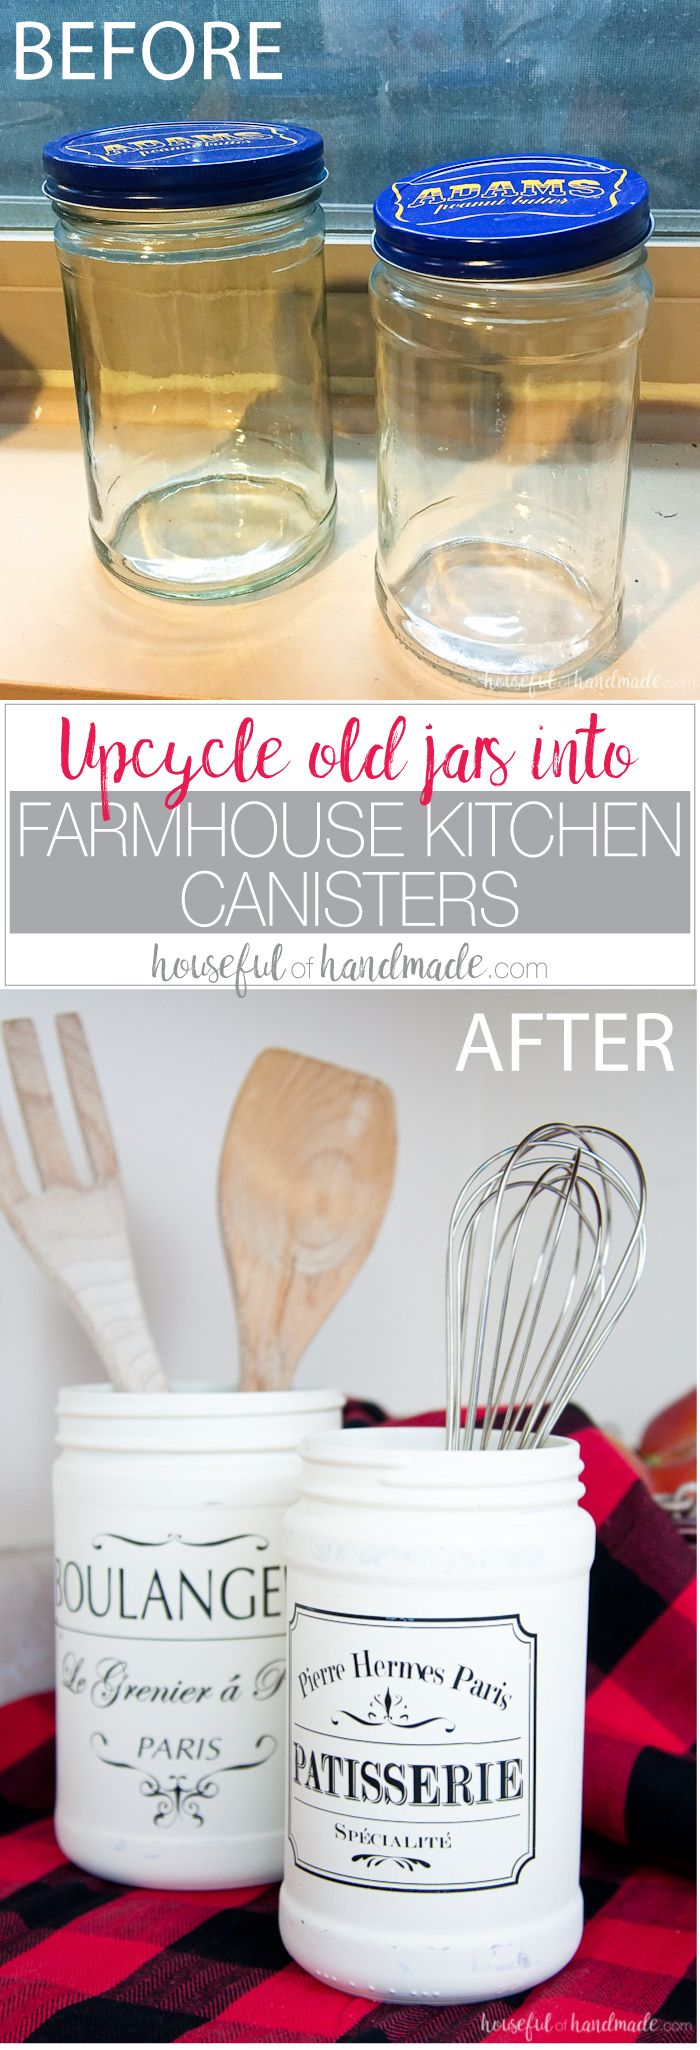 best 25 canisters ideas only on pinterest kitchen canisters farmhouse kitchen canister diy